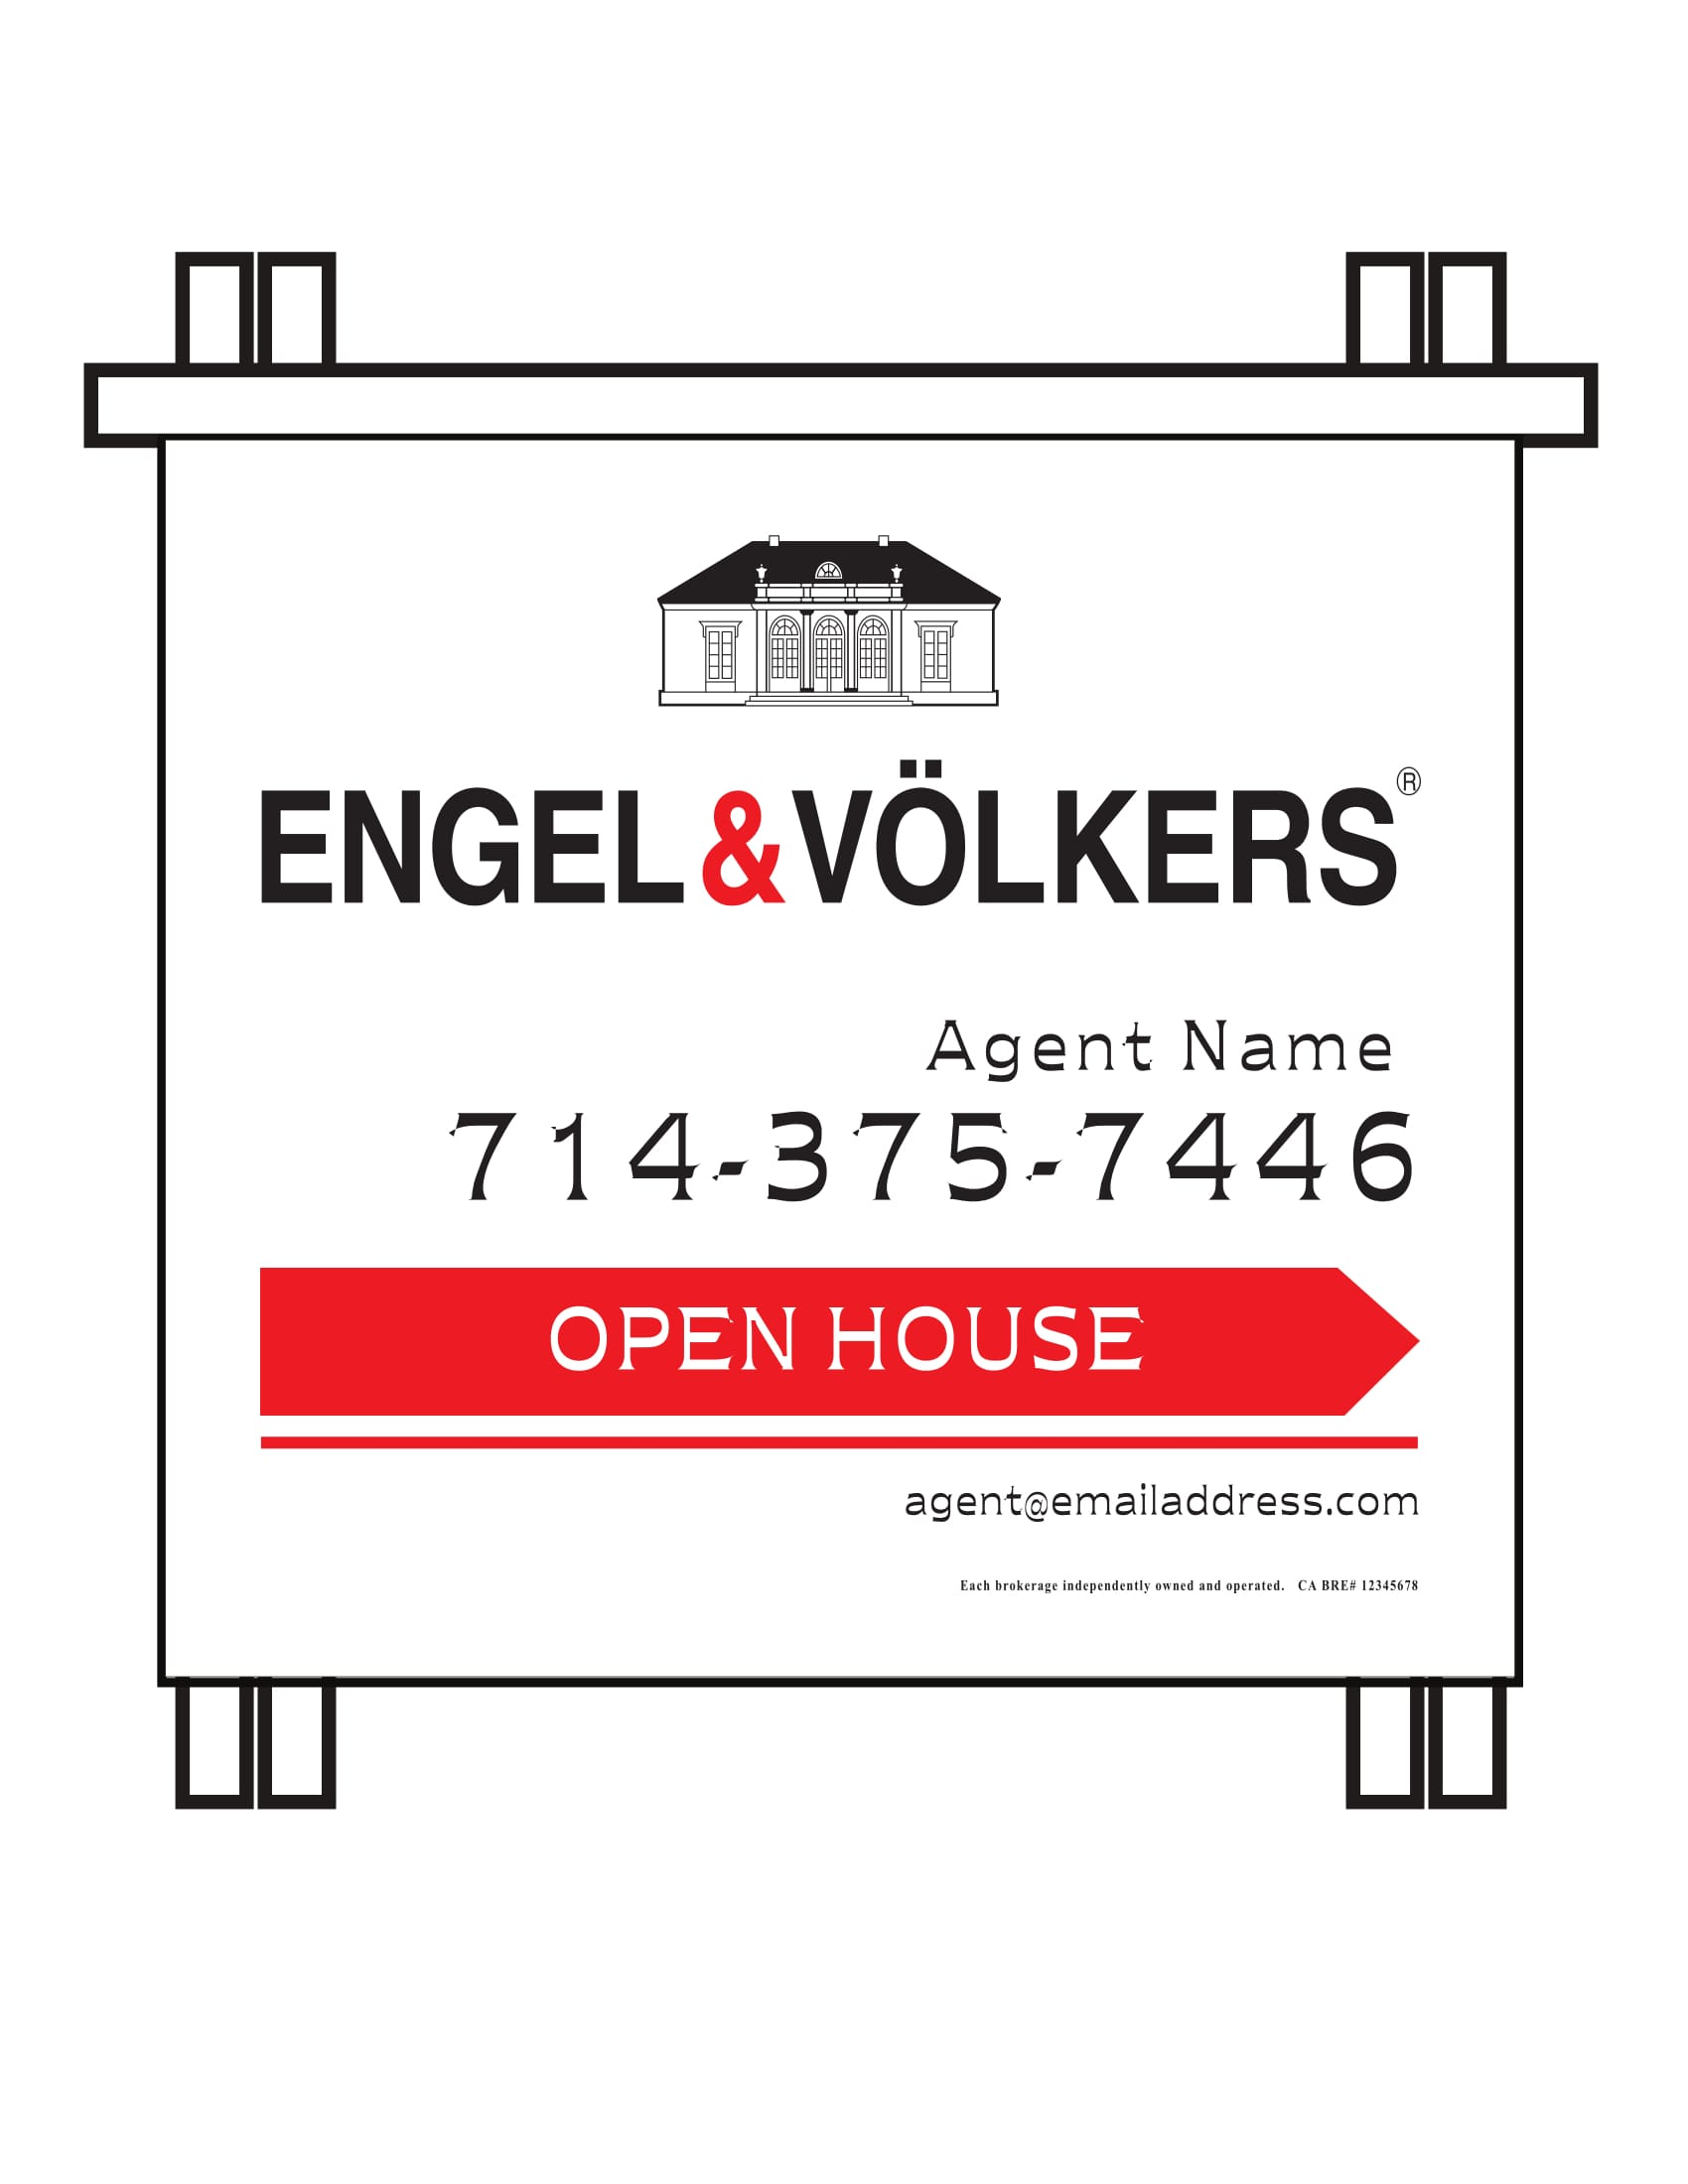 Engel & Volkers PVC Open House A-frame